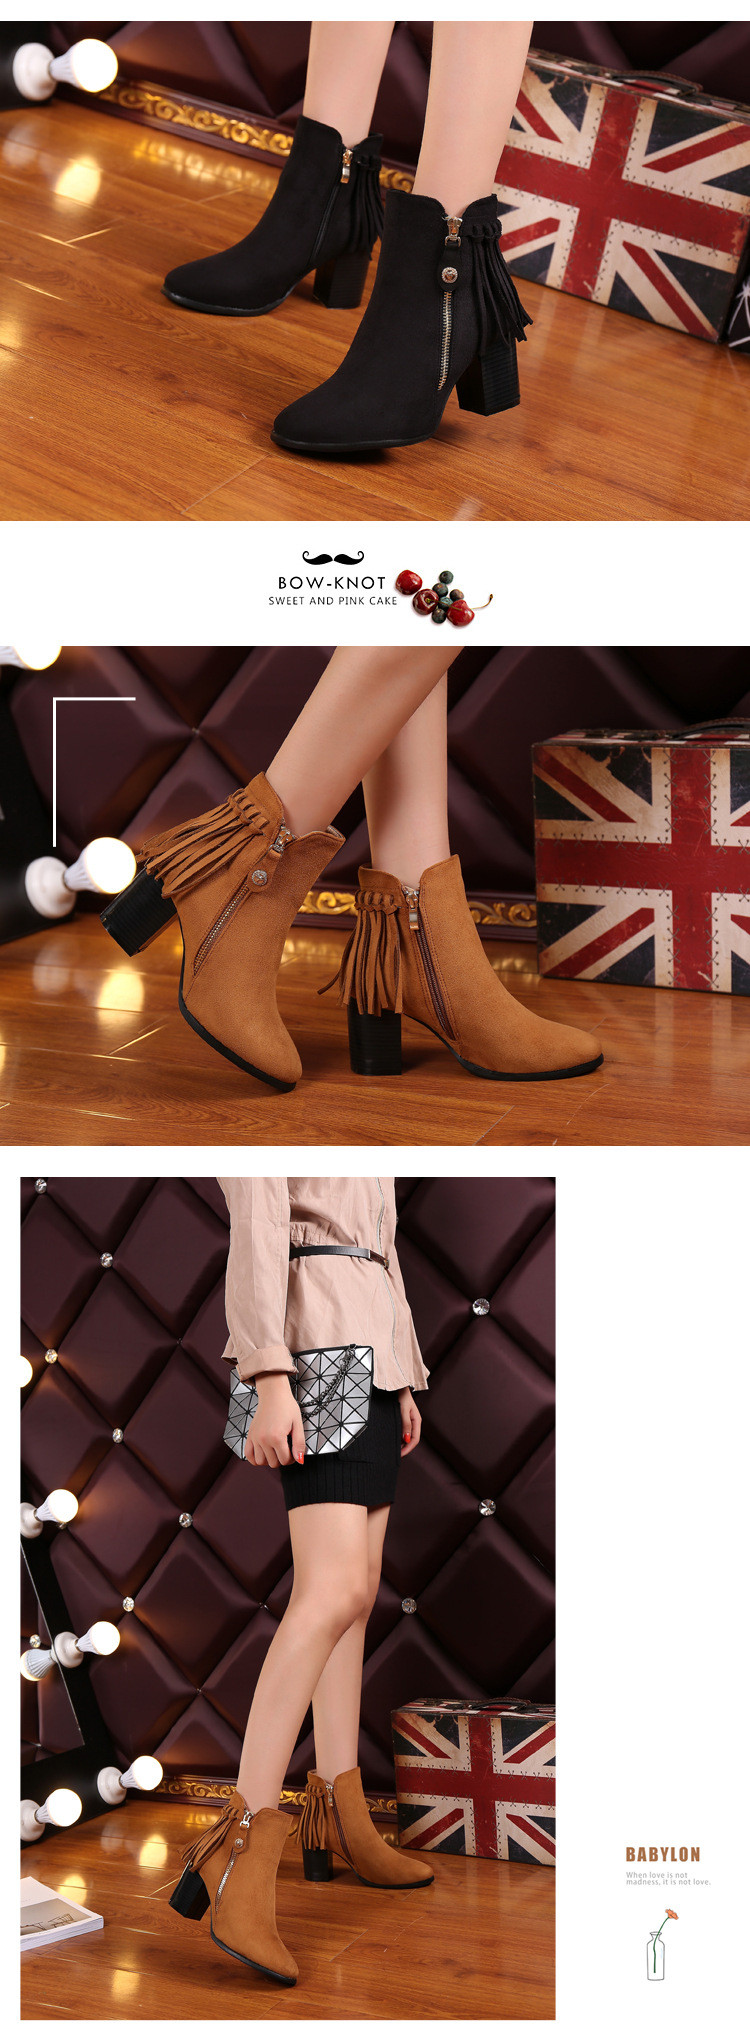 2016 Autumn New Women's Cheap Chunky High Heeled Ankle Booties Naked Female Fringe Boots Winter Work Shoes Office